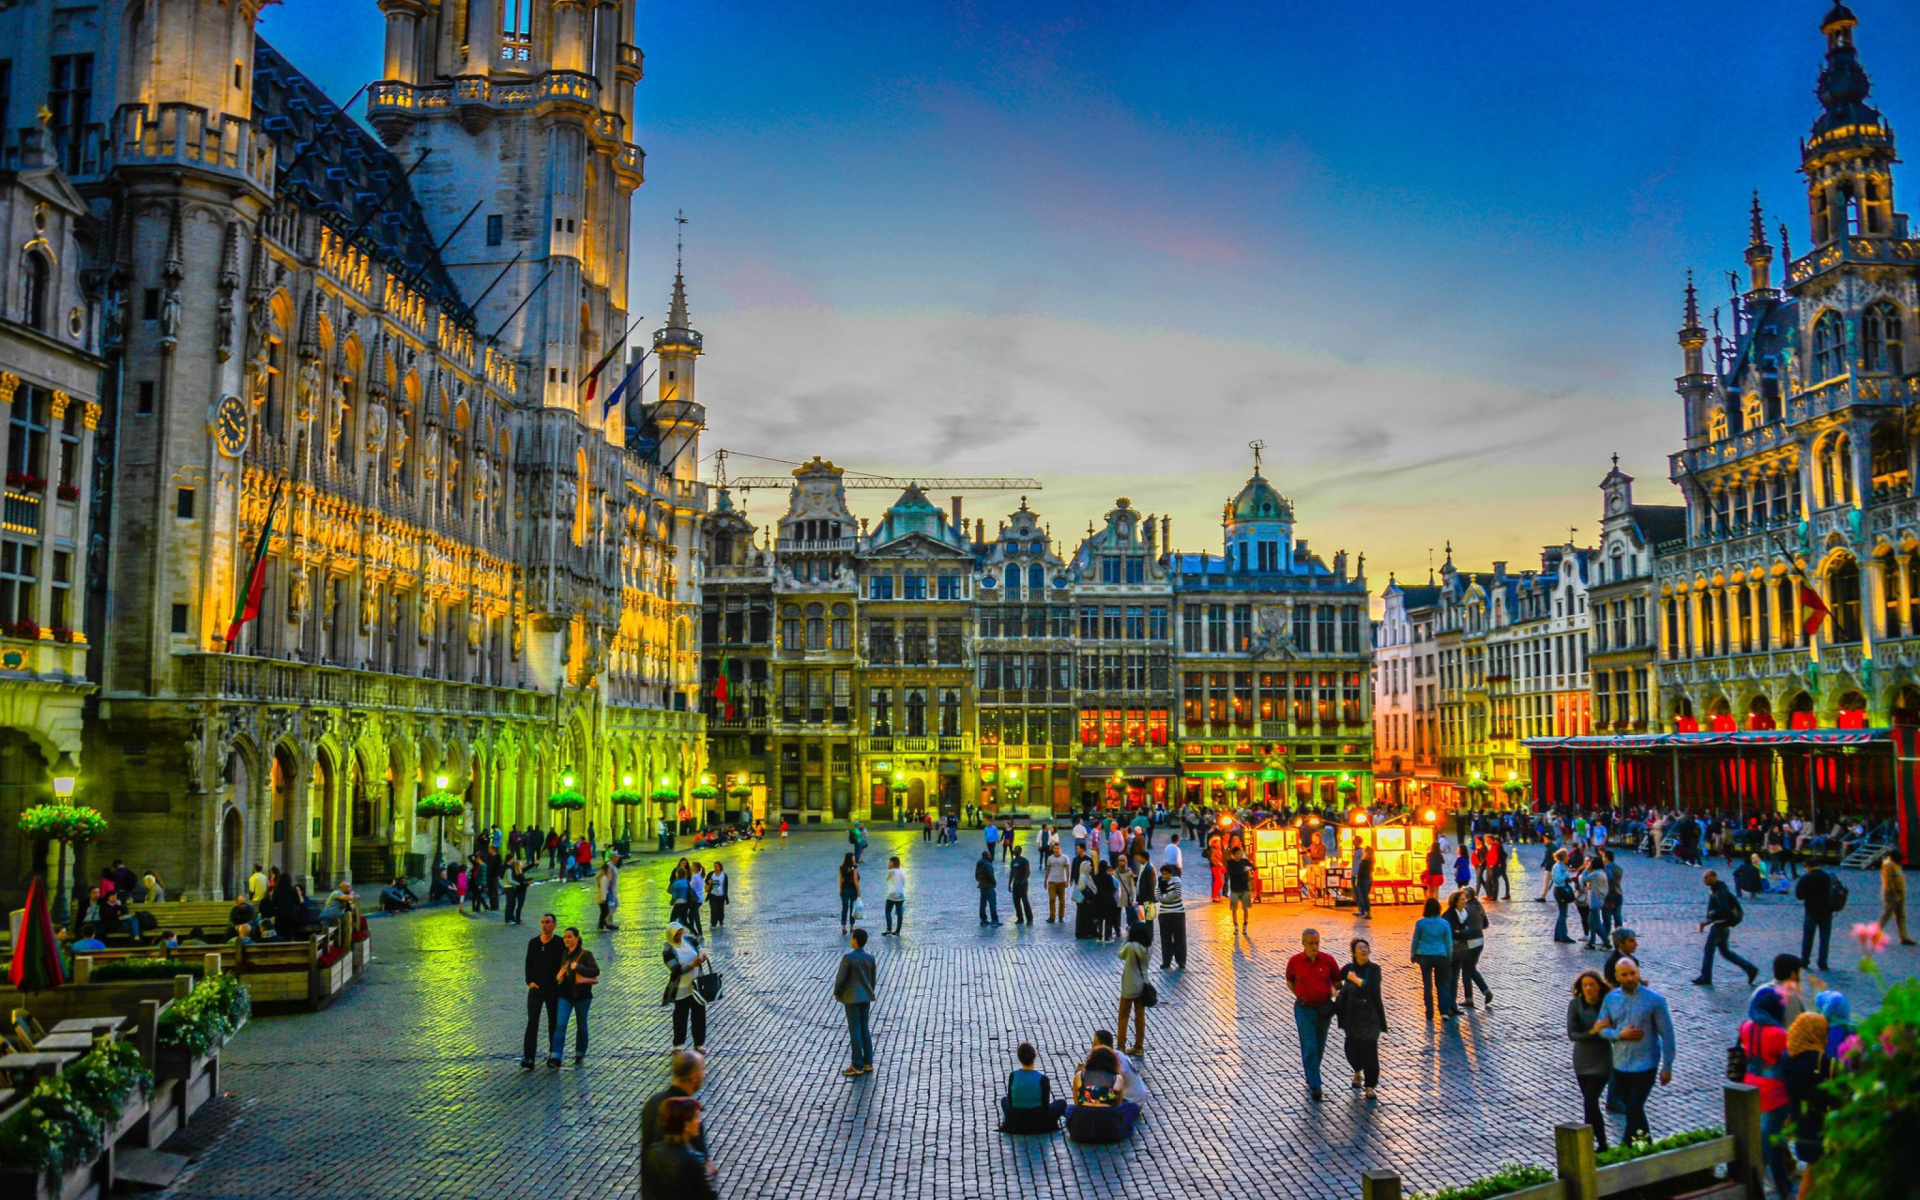 Gta San Andreas Wallpaper Hd Grand Place By Night In Brussels Wallpaper For Widescreen